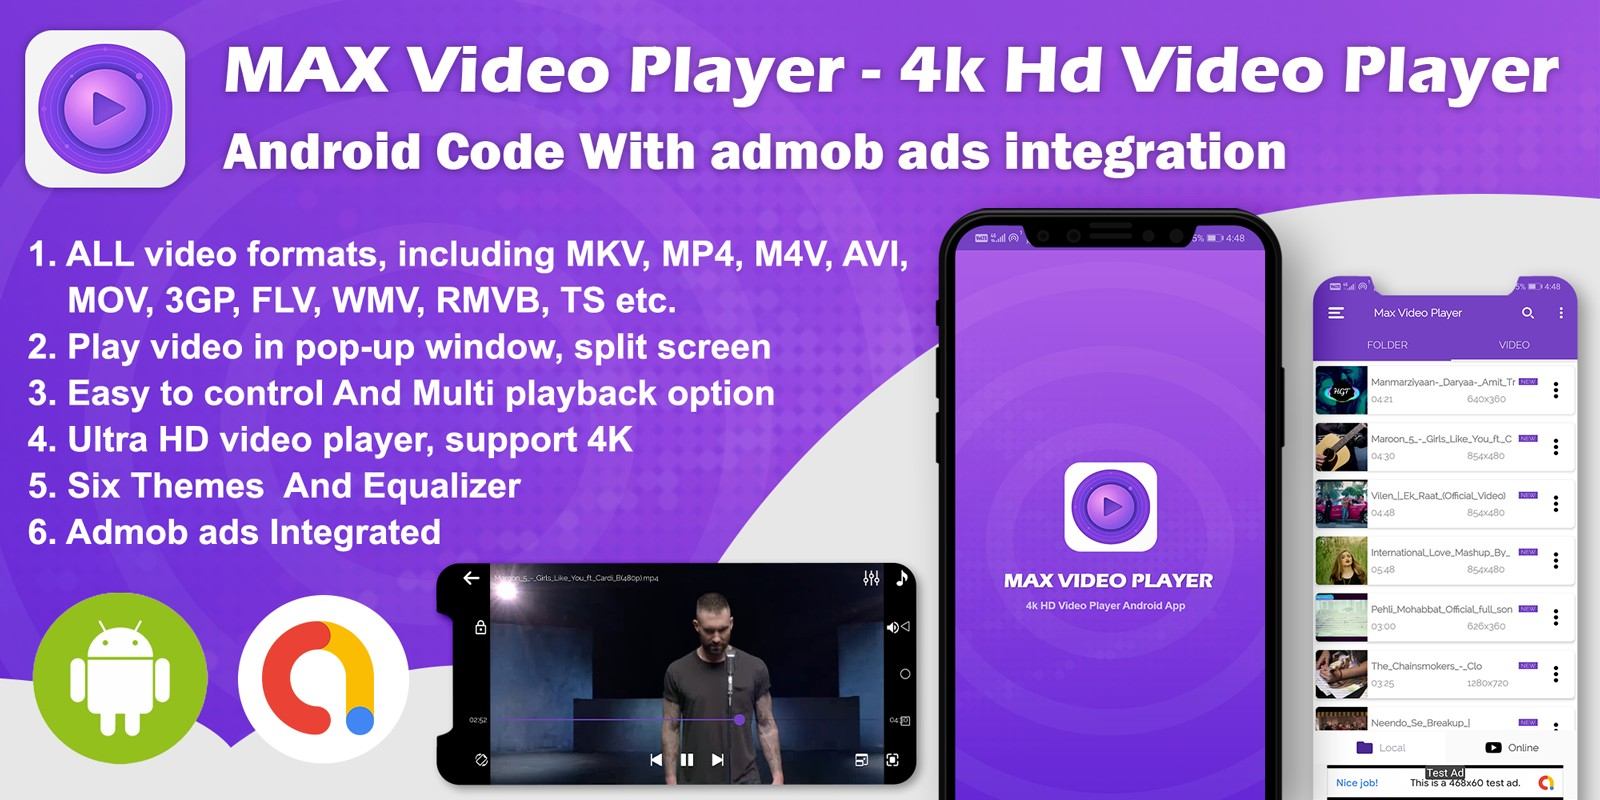 Android Max Video Player